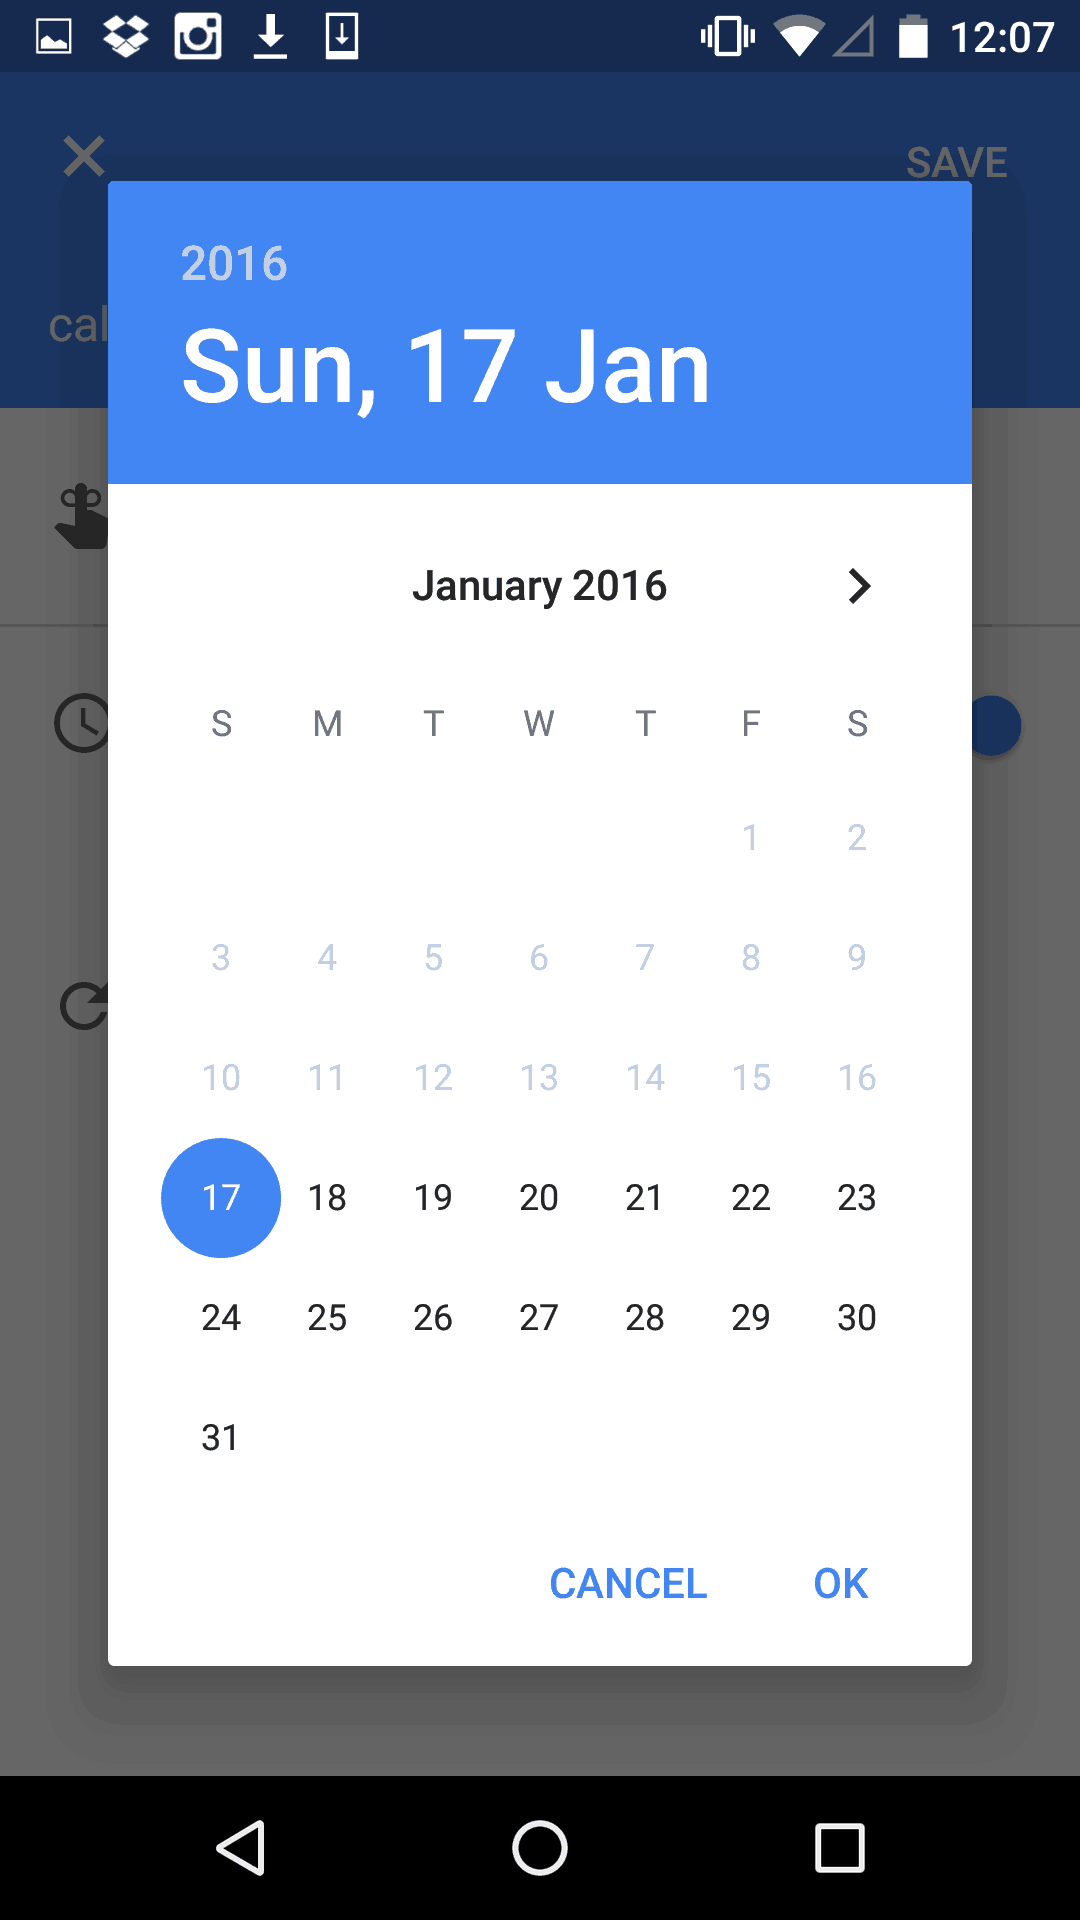 Date Picker by Google Calendar from UIGarage